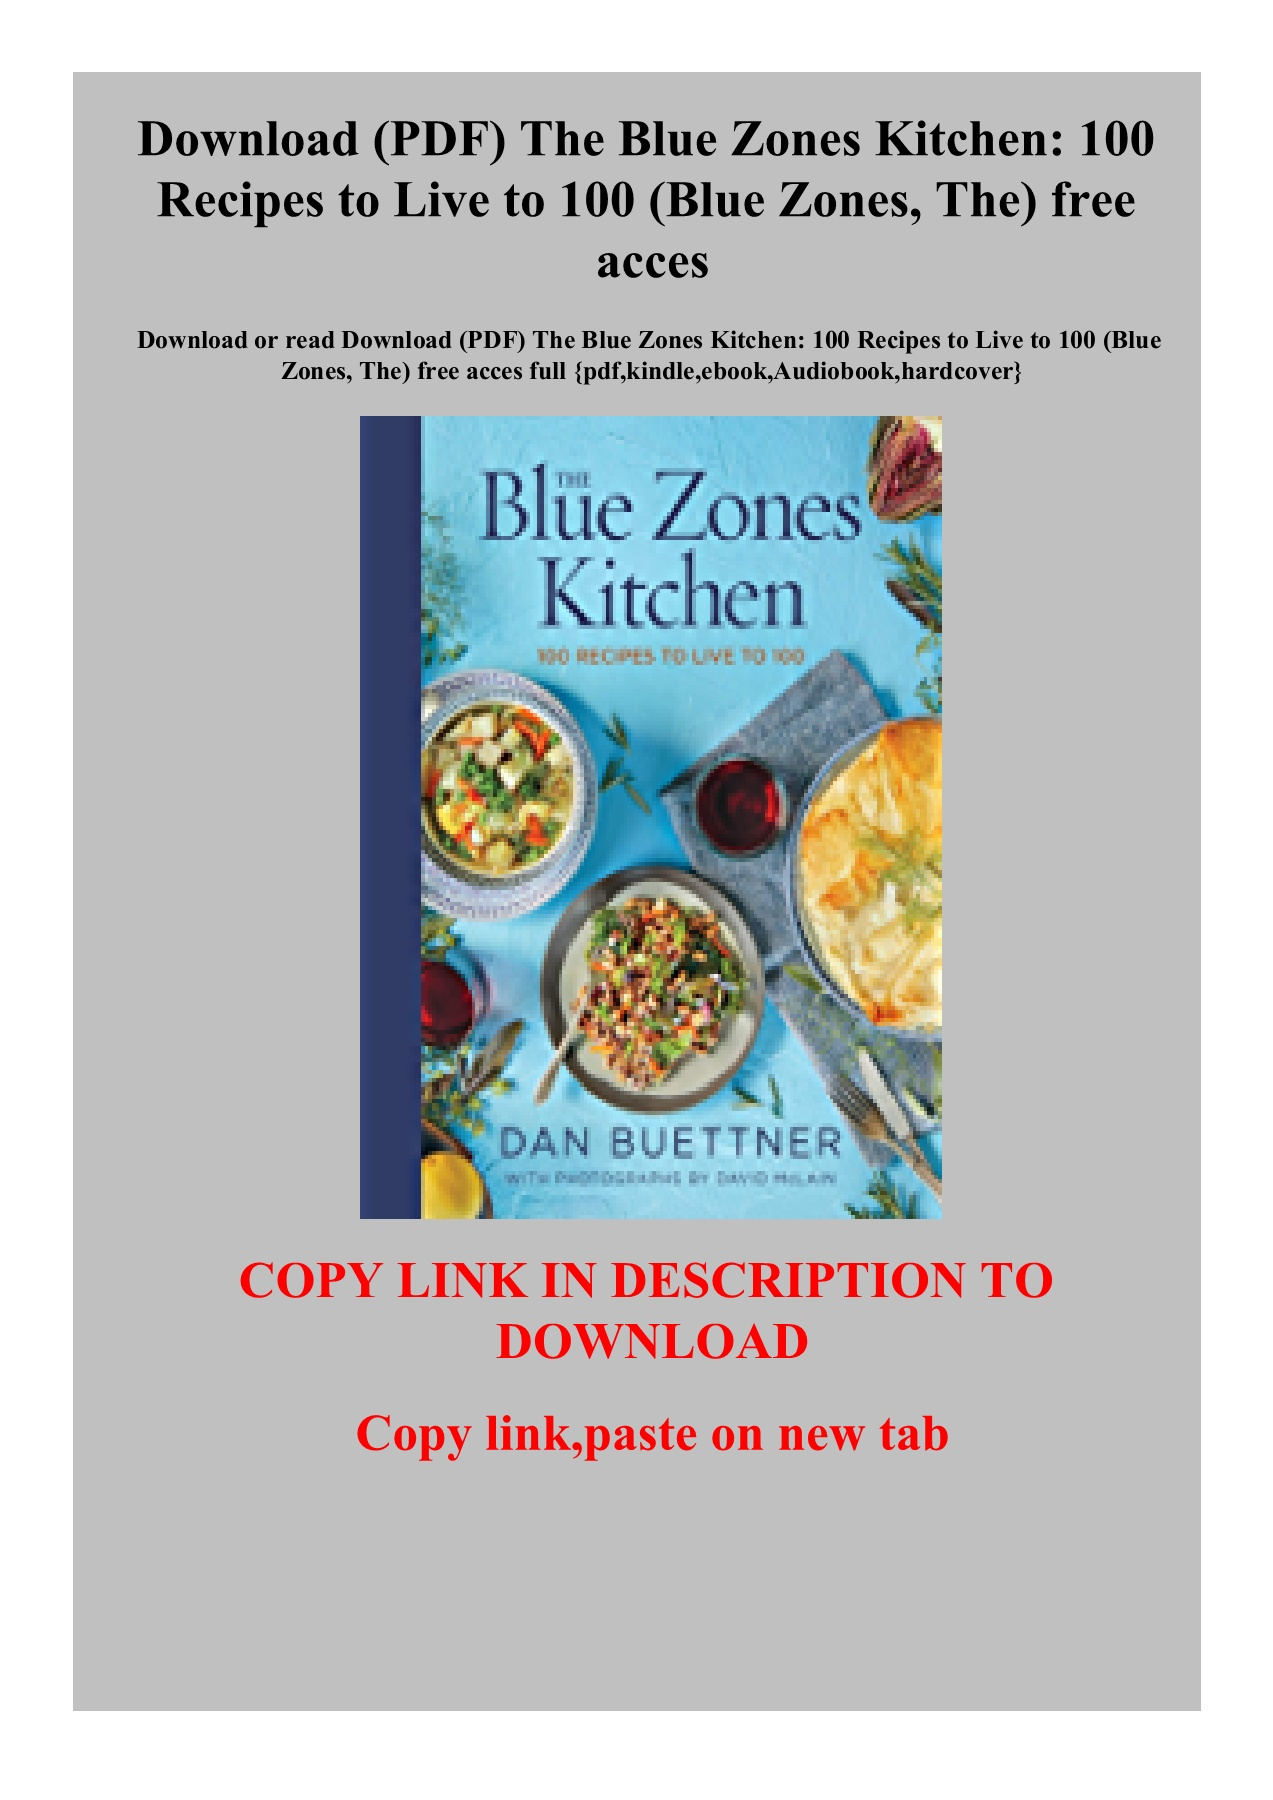 Download Pdf The Blue Zones Kitchen 100 Recipes To Live To 100 Blue Zones The Free Acces Lwuxeeahhe Flip Pdf Anyflip